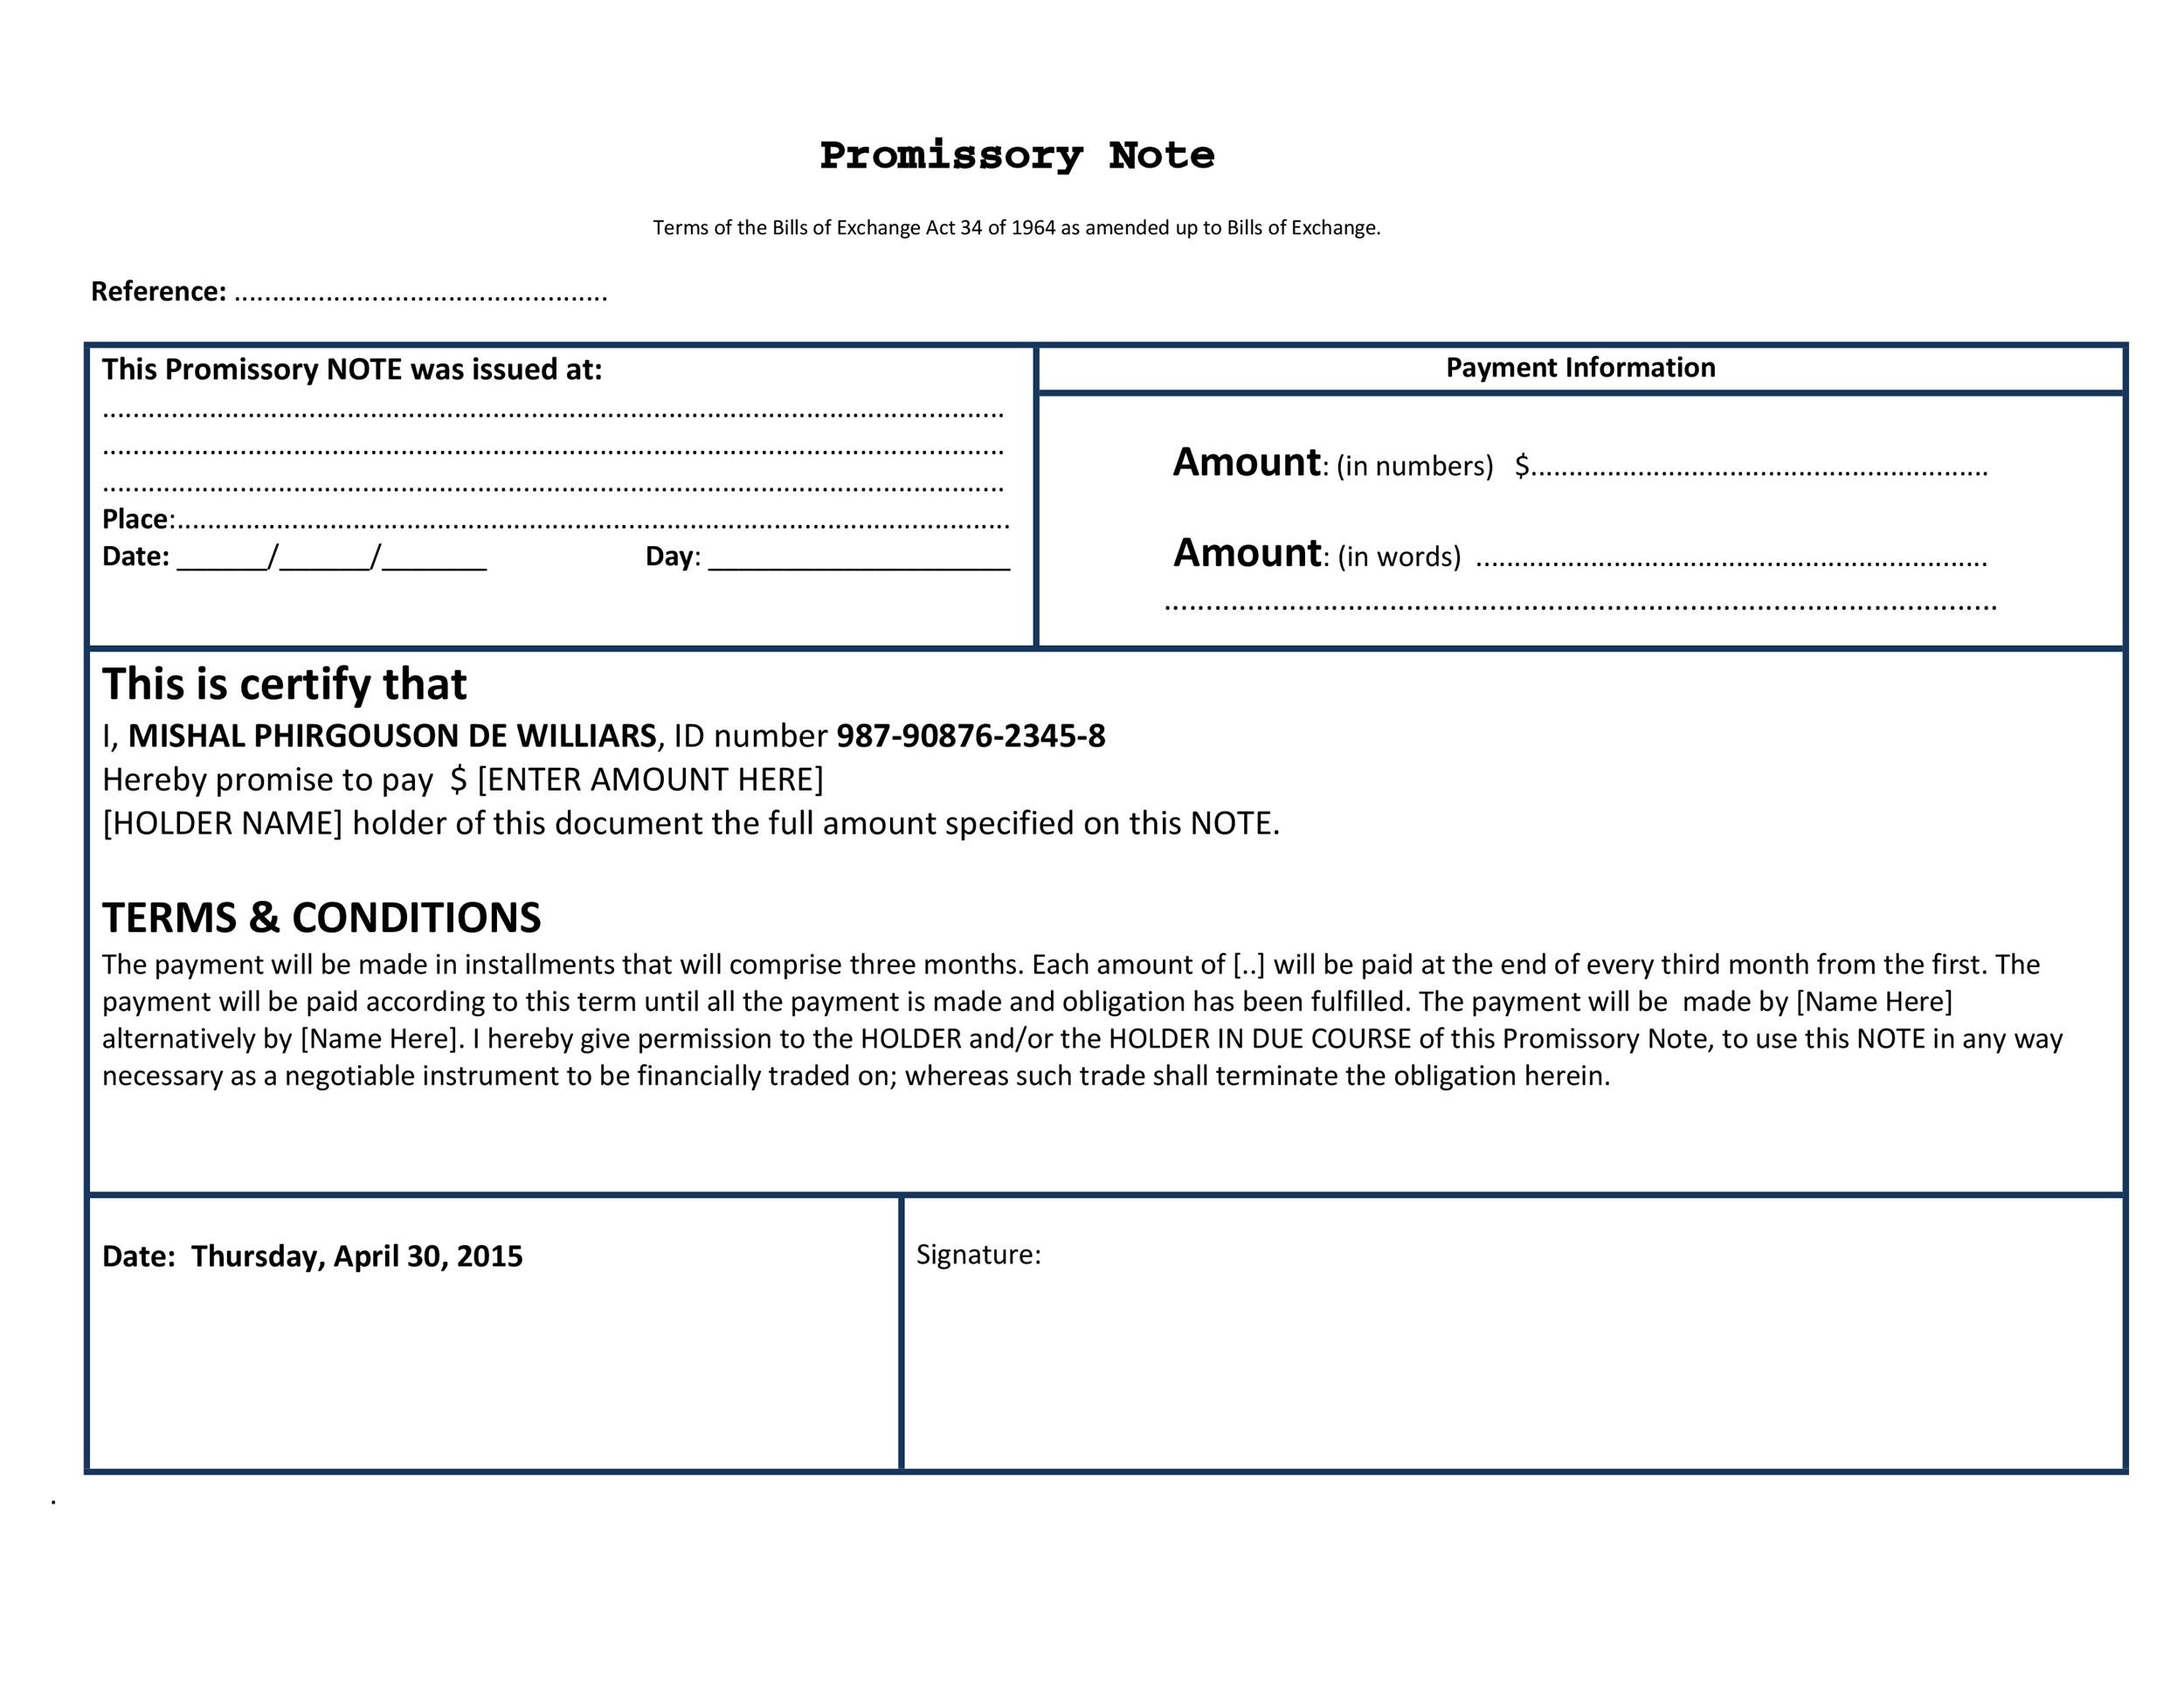 45 FREE Promissory Note Templates  Forms Word  PDF - Template Lab - legal promise to pay document